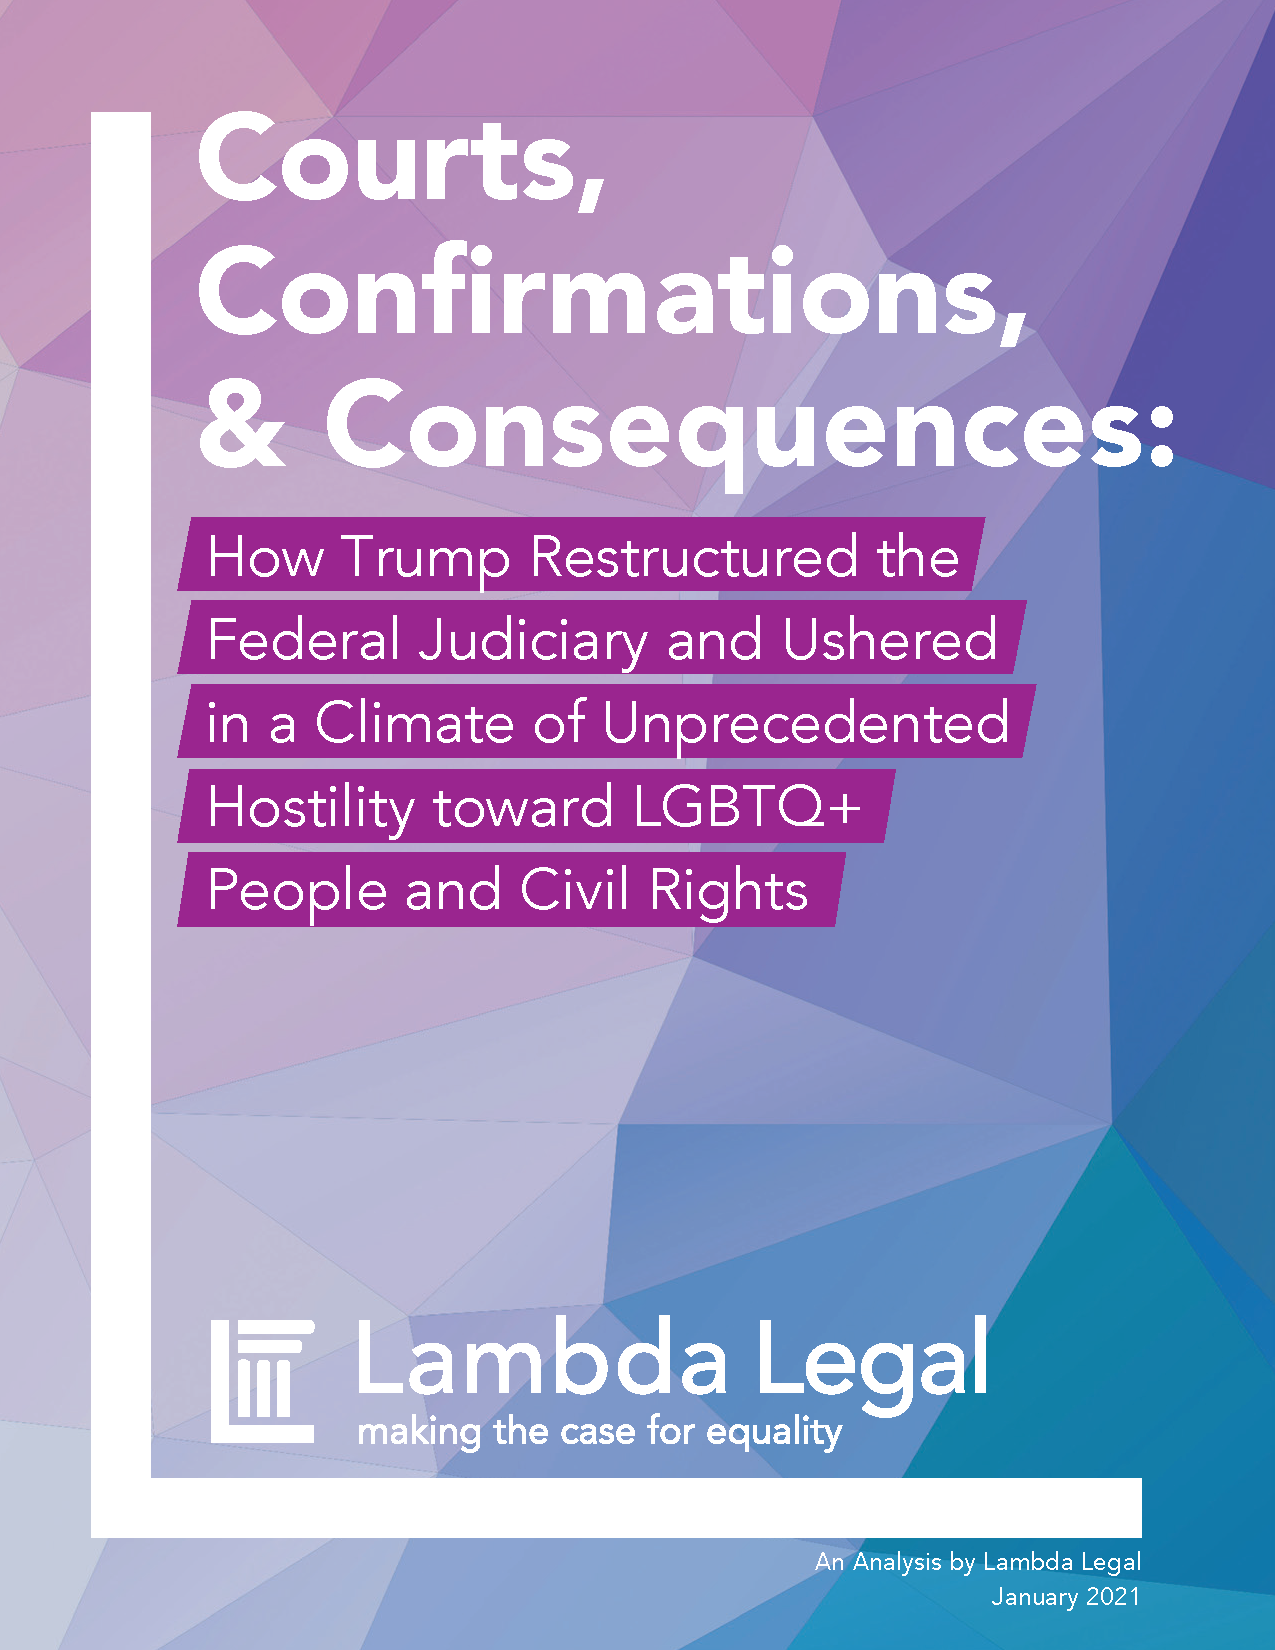 Courts, Confirmations & Consequences